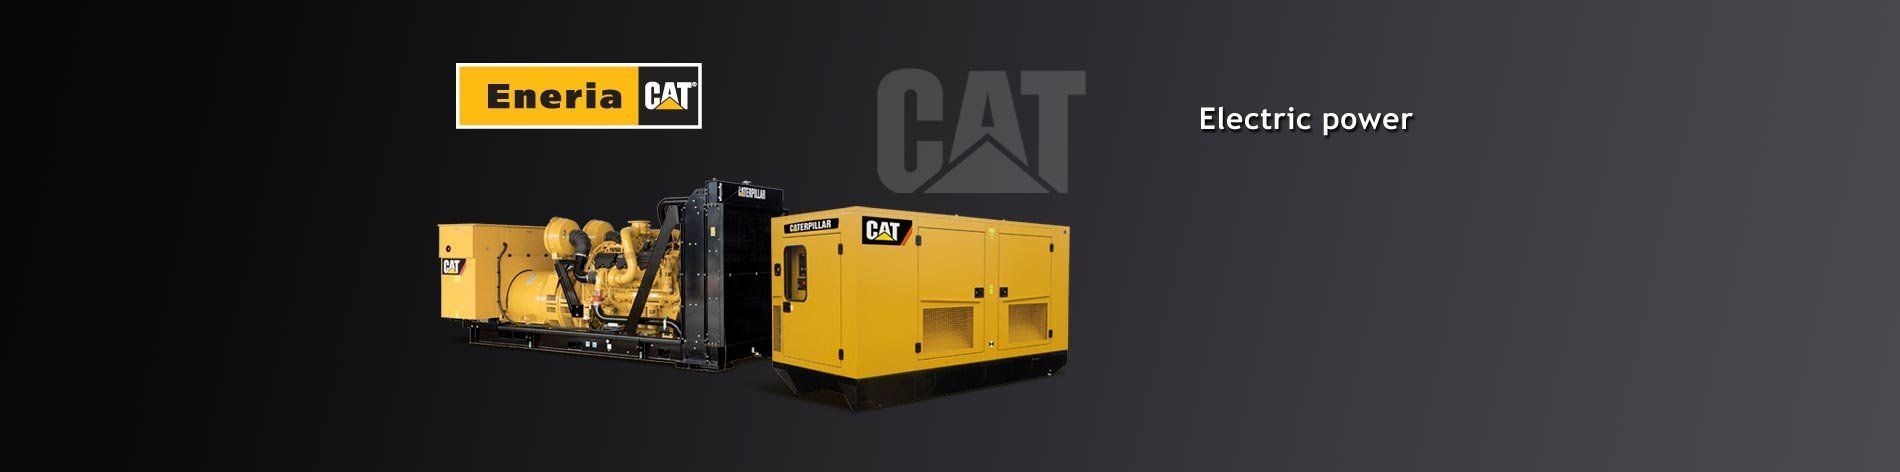 Diesel generator set applications - Eneria Romania